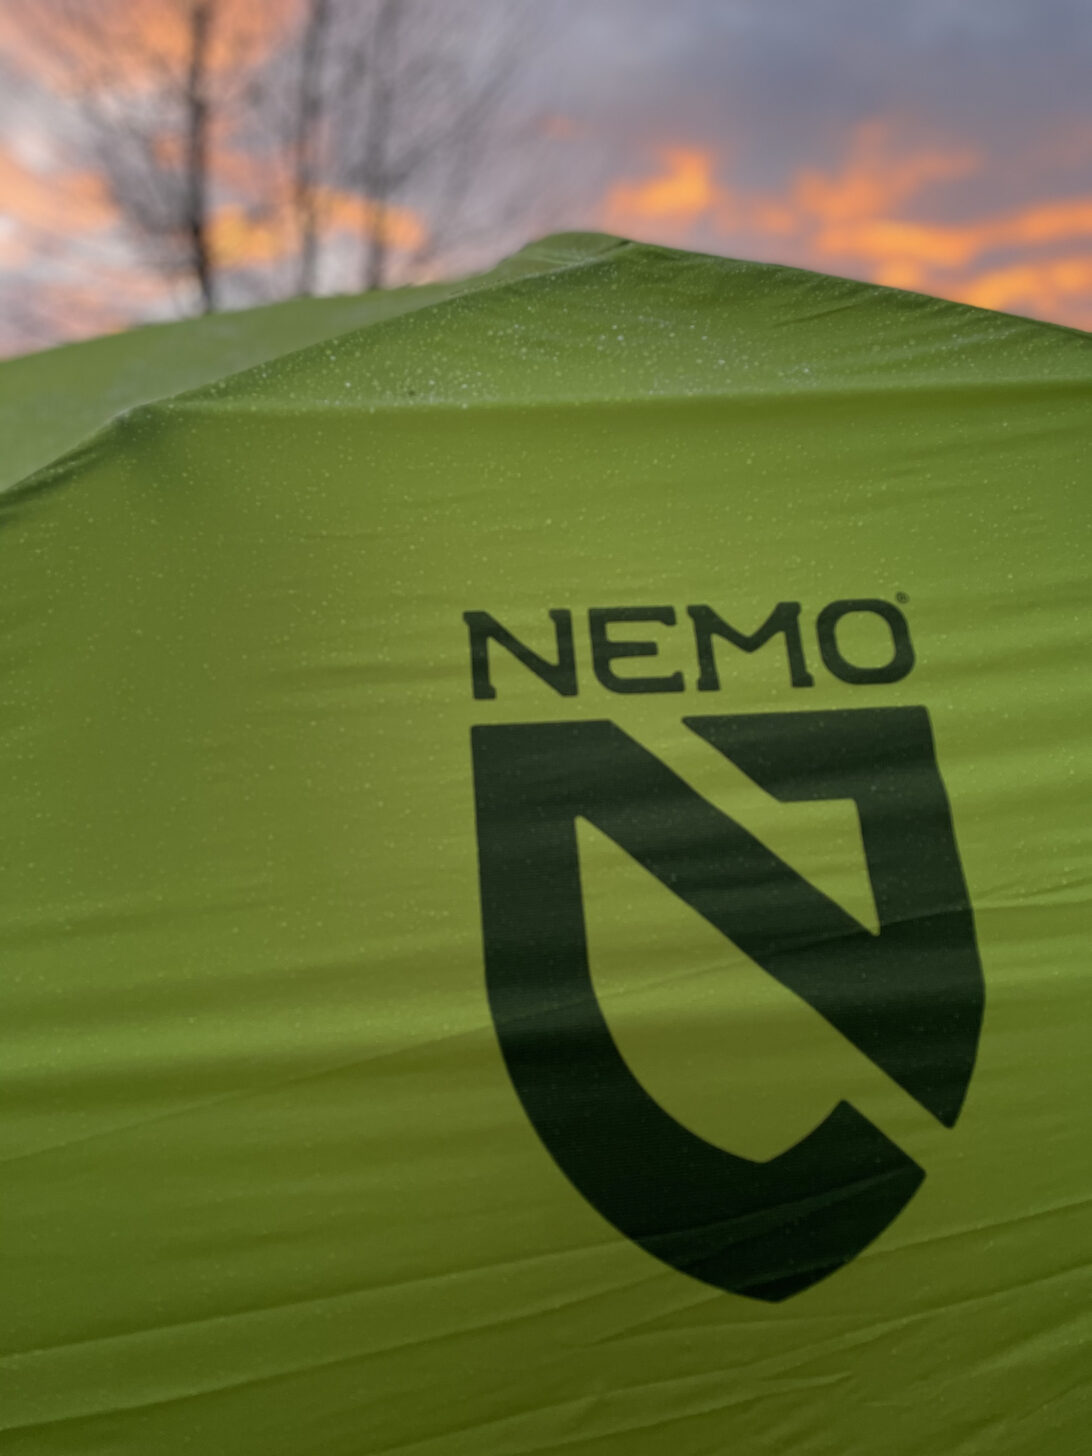 a close up of the NEMO logo with a sunset in the background.